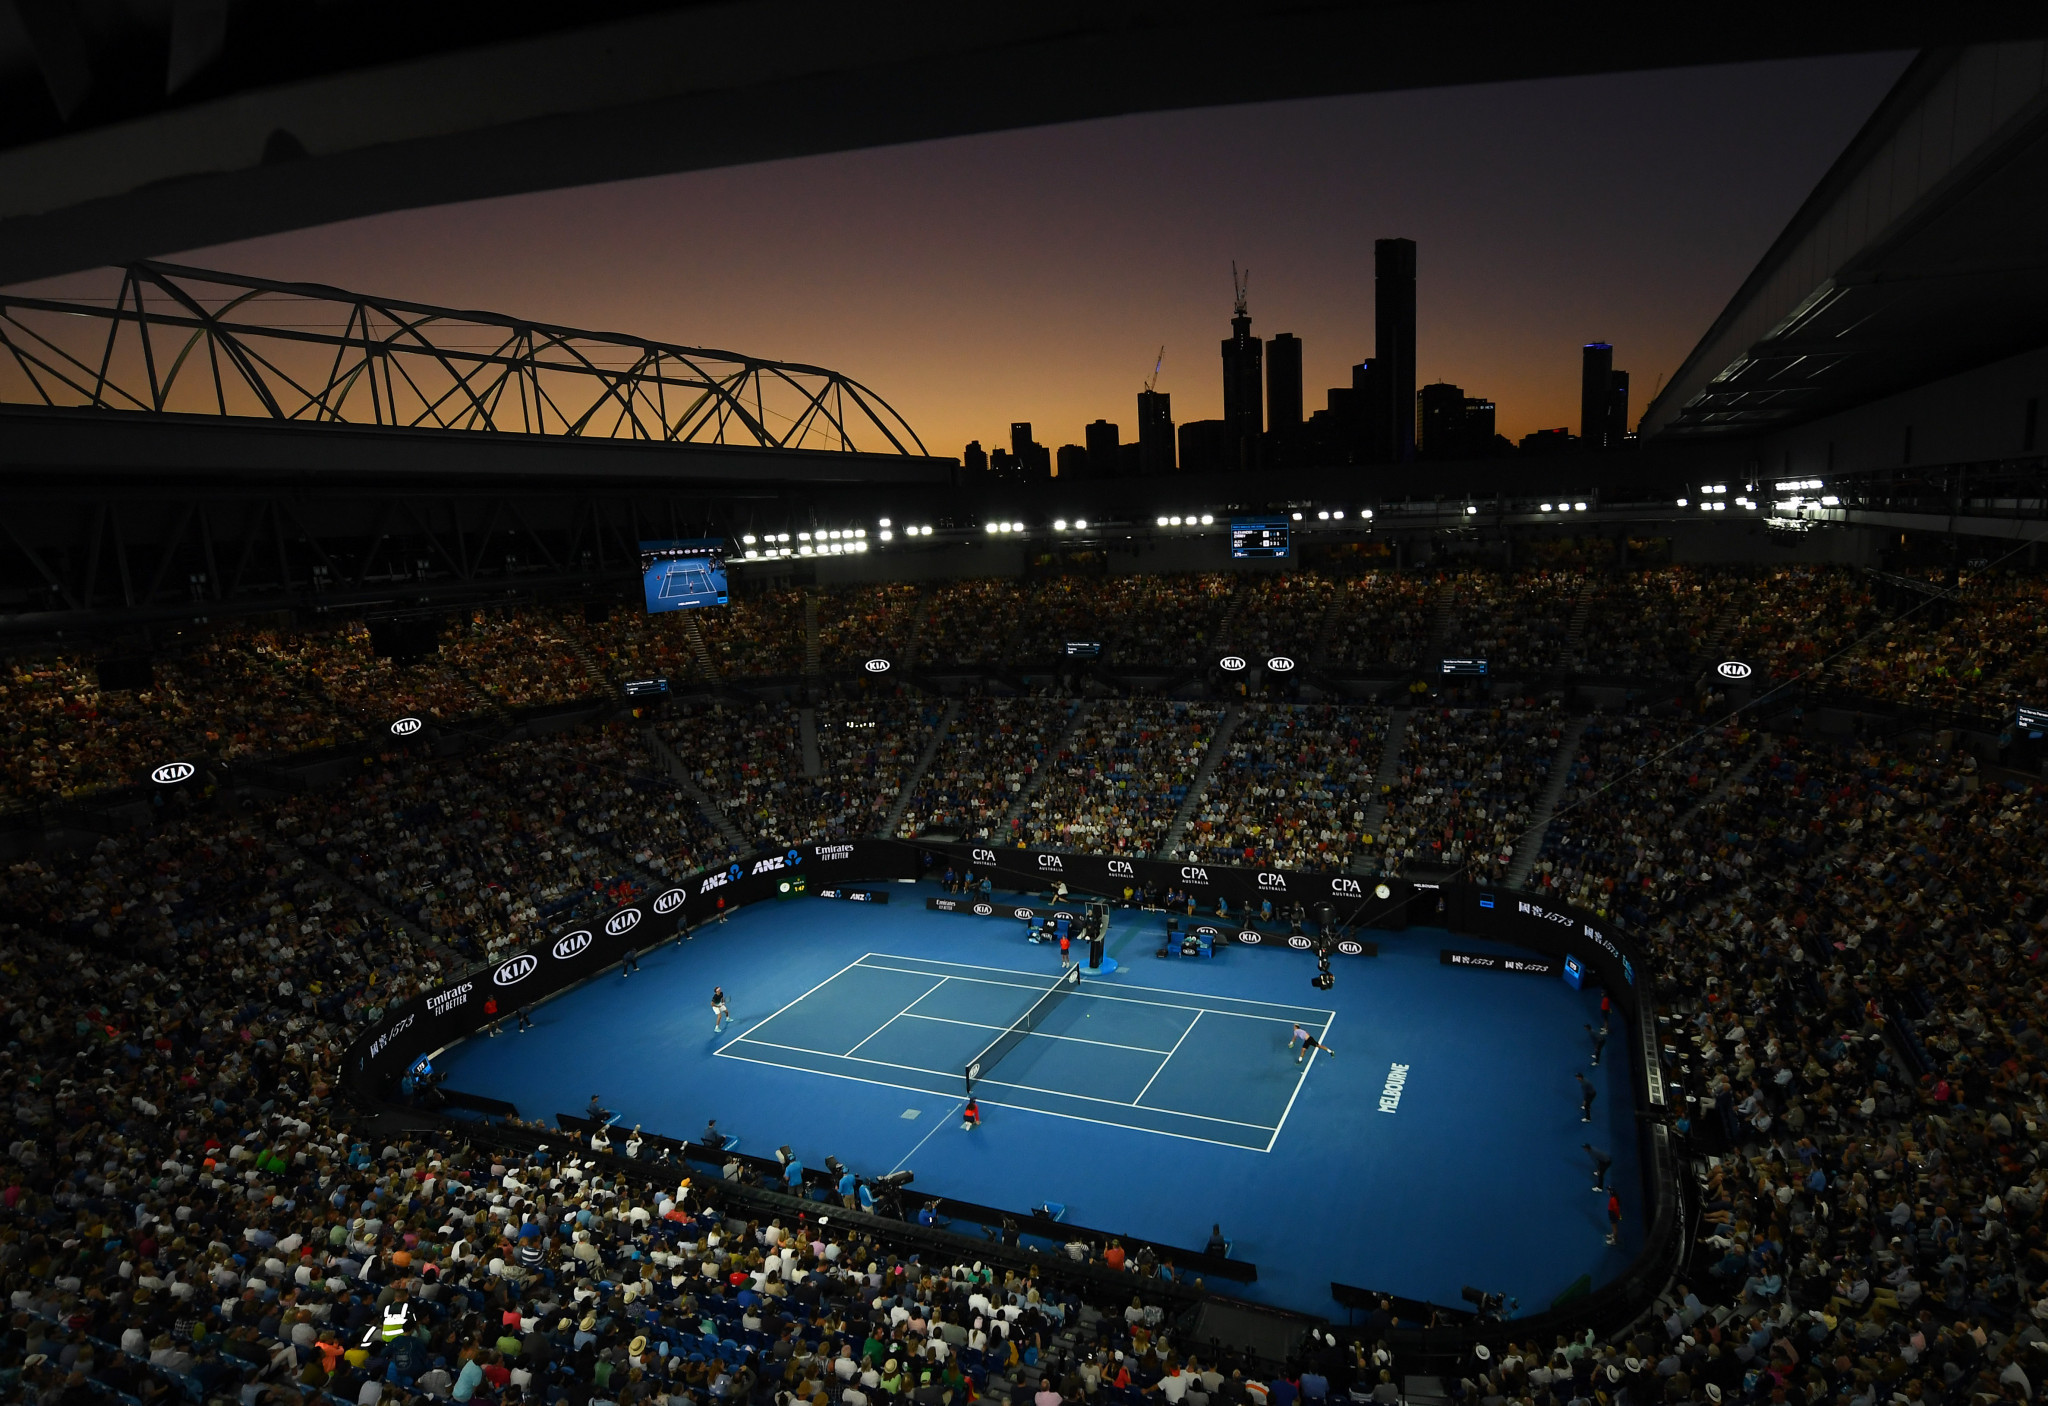 The crowd stayed late again as competition continued in Melbourne ©Getty Images